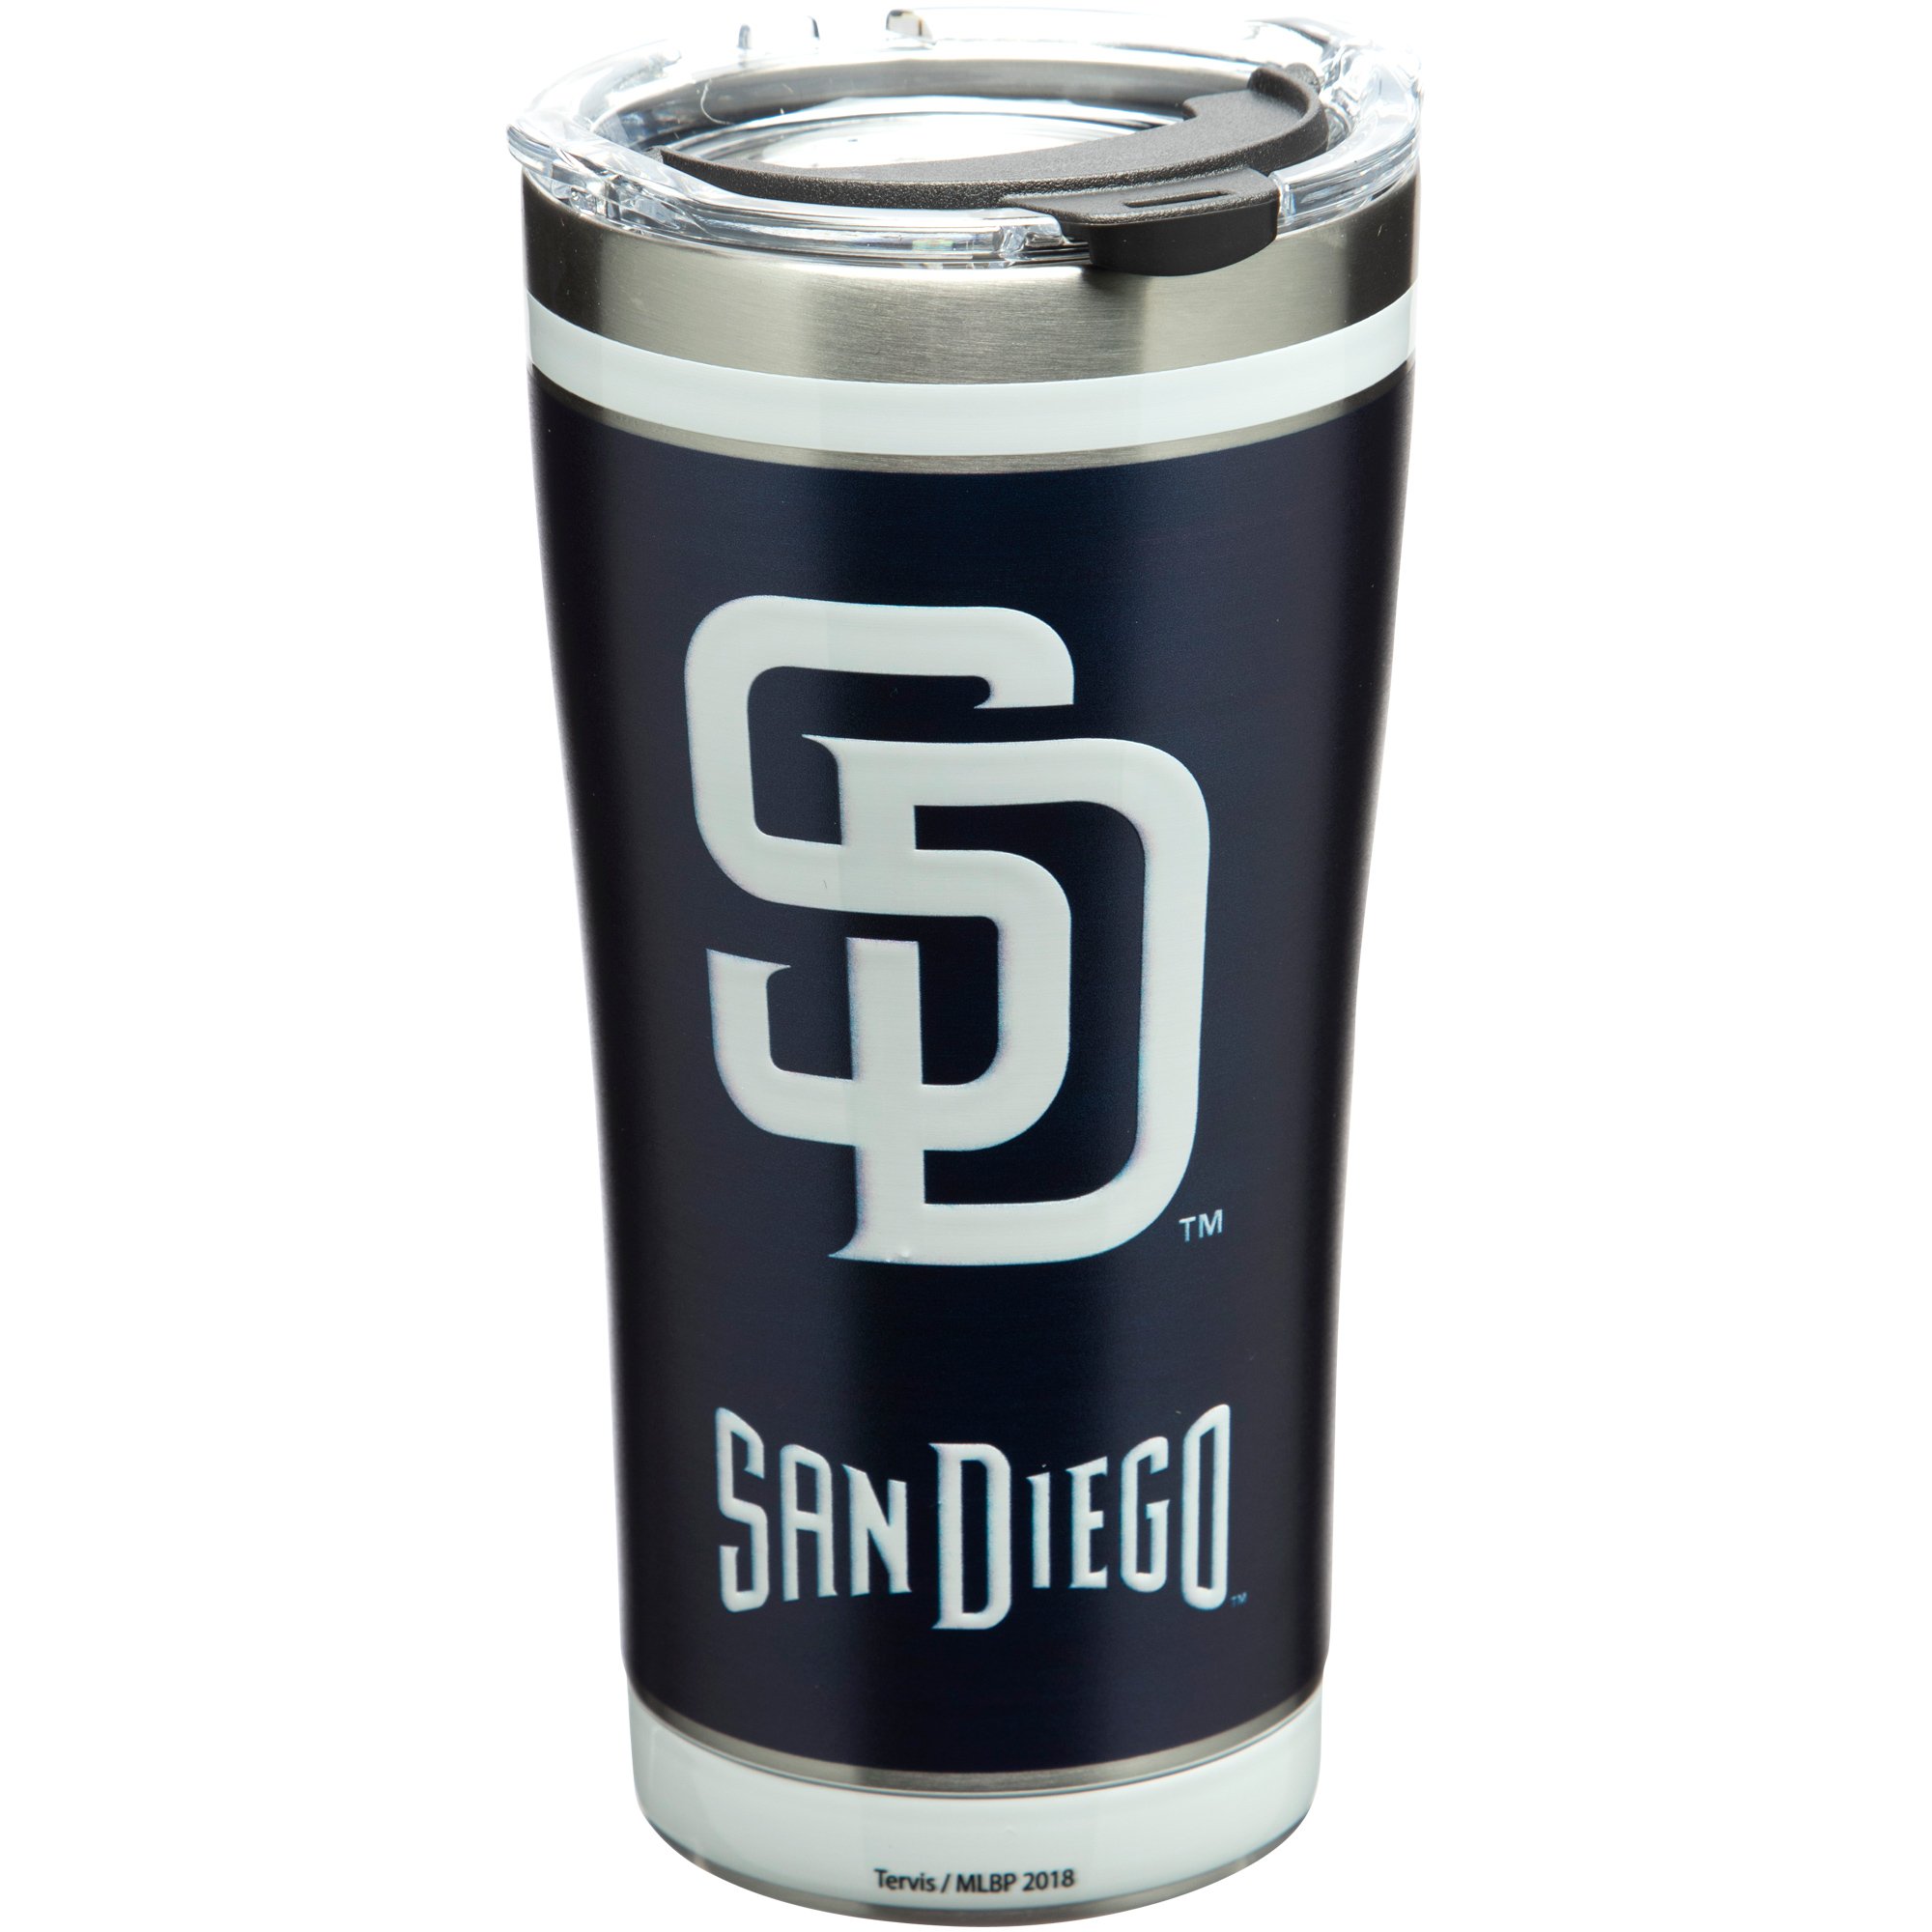 San Diego Padres Tervis 20oz. Stainless Steel Tumbler - No Size